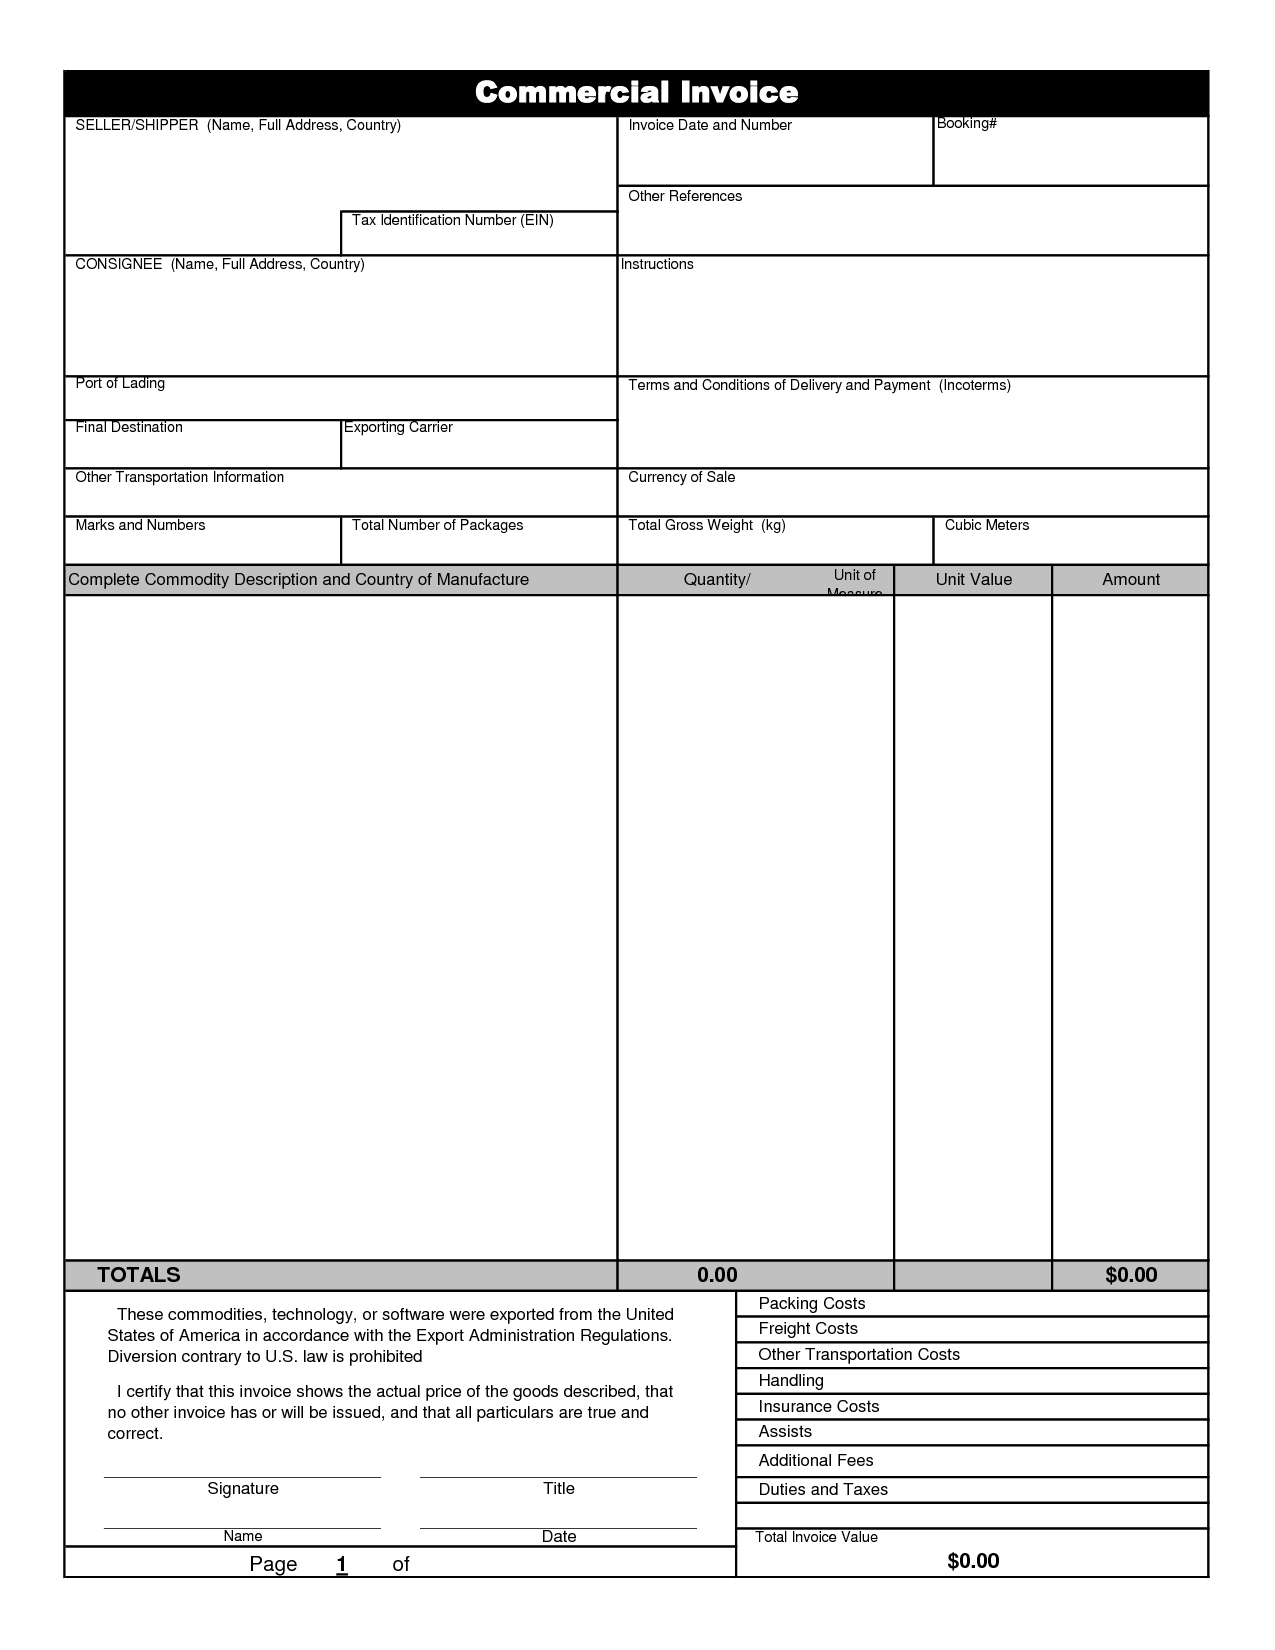 international commercial invoice template invoice example commercial invoice software